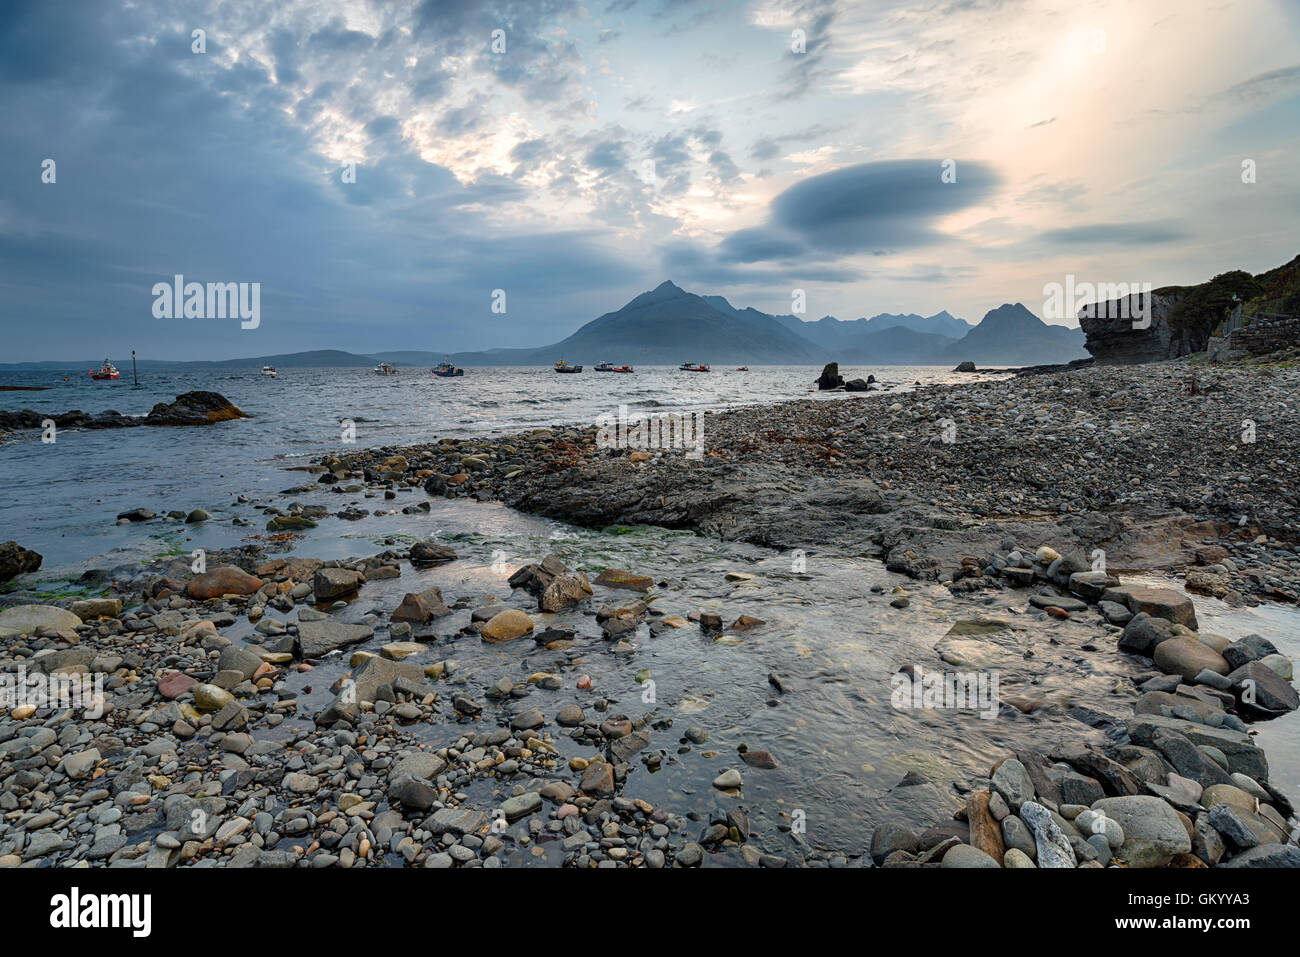 A stormy evening on the beach at Elgol on the Isle of Skye in Scotland, looking across Loch Scavaig to Soay - Stock Image